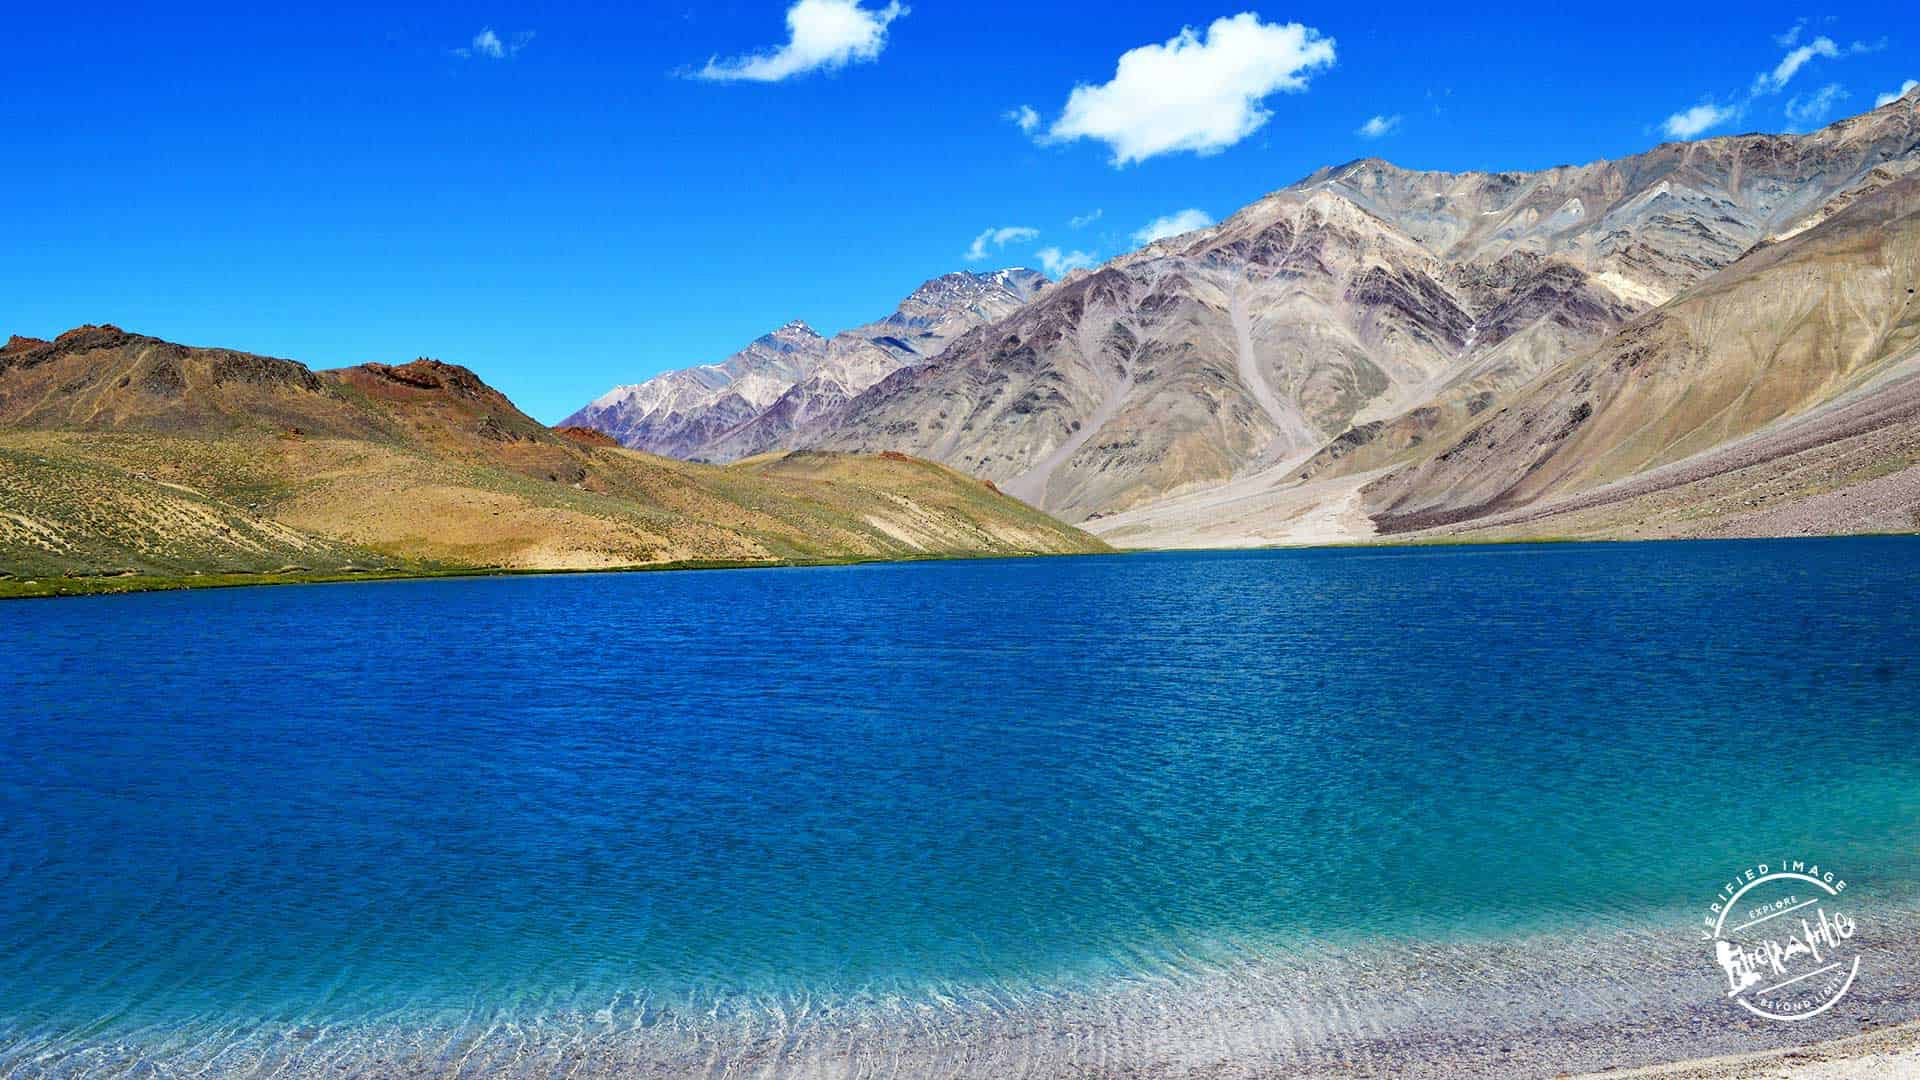 Beautiful Chandratal Lake - clear blue water